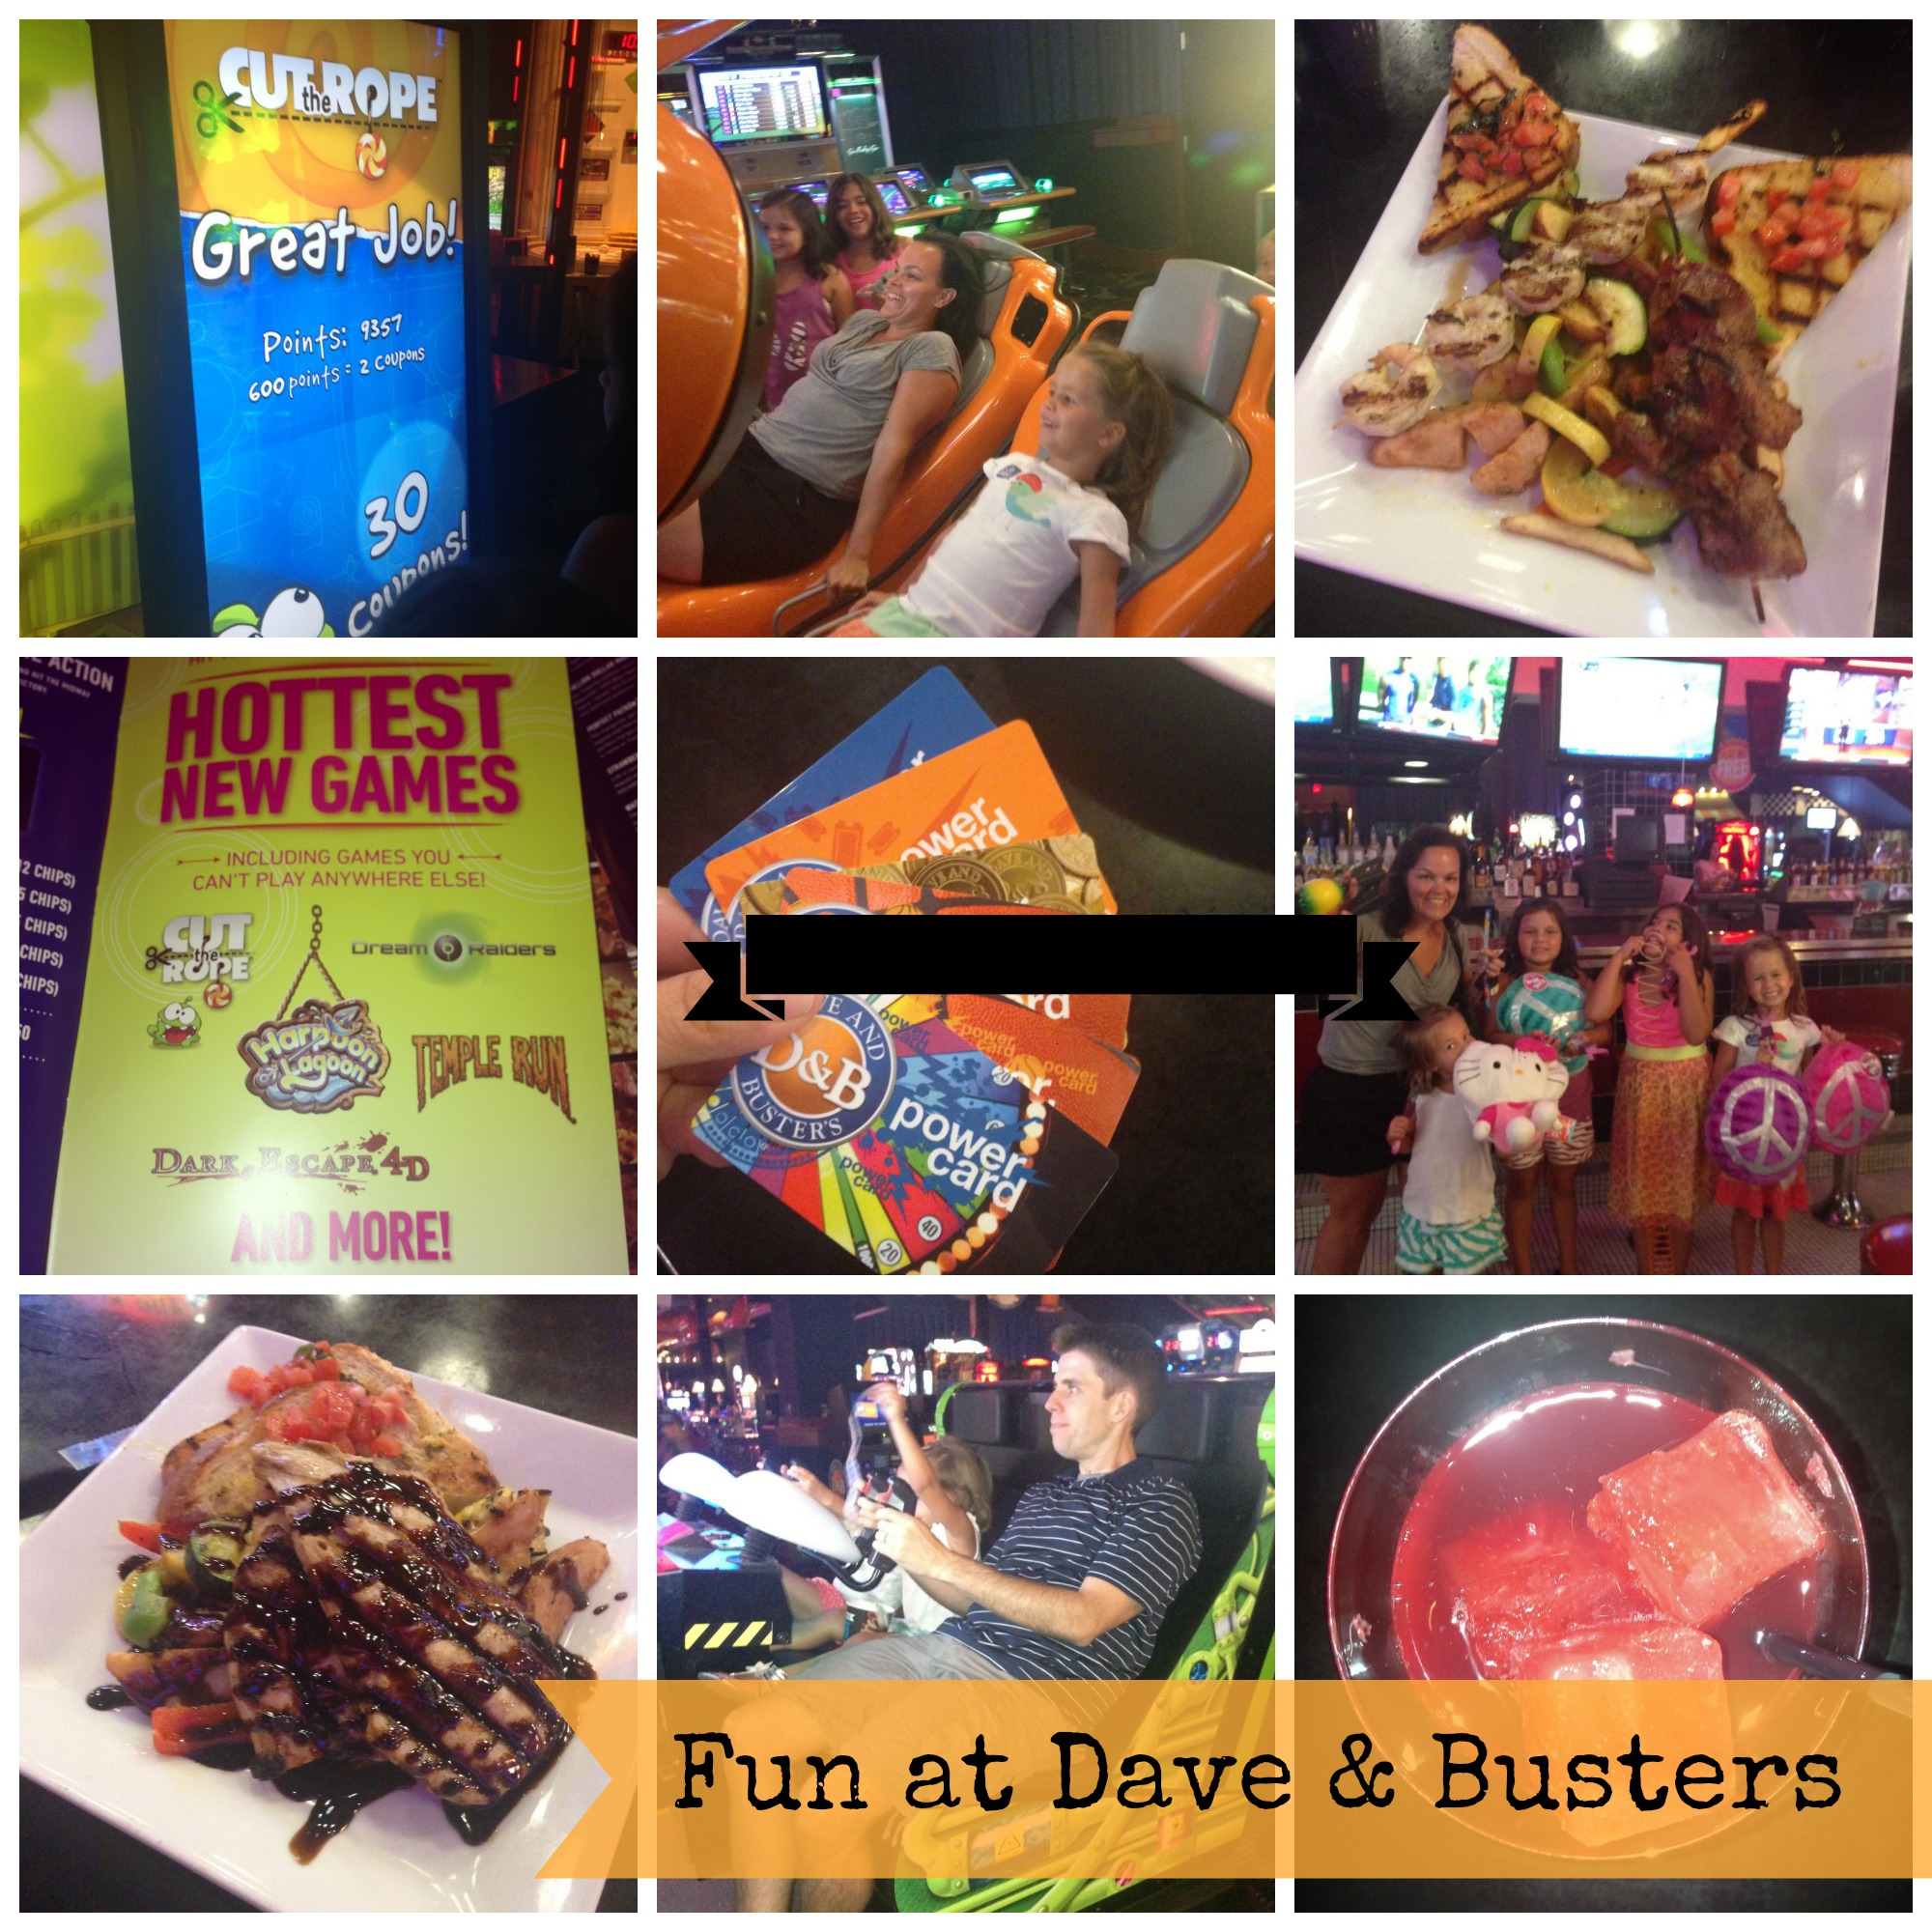 Dave and busters printable coupons january 2013 - If You Follow Me On Facebook Or Twitter You Got To See It All Unfold I Loaded Up My Sweet Family And We Enjoyed A Night At Dave And Busters